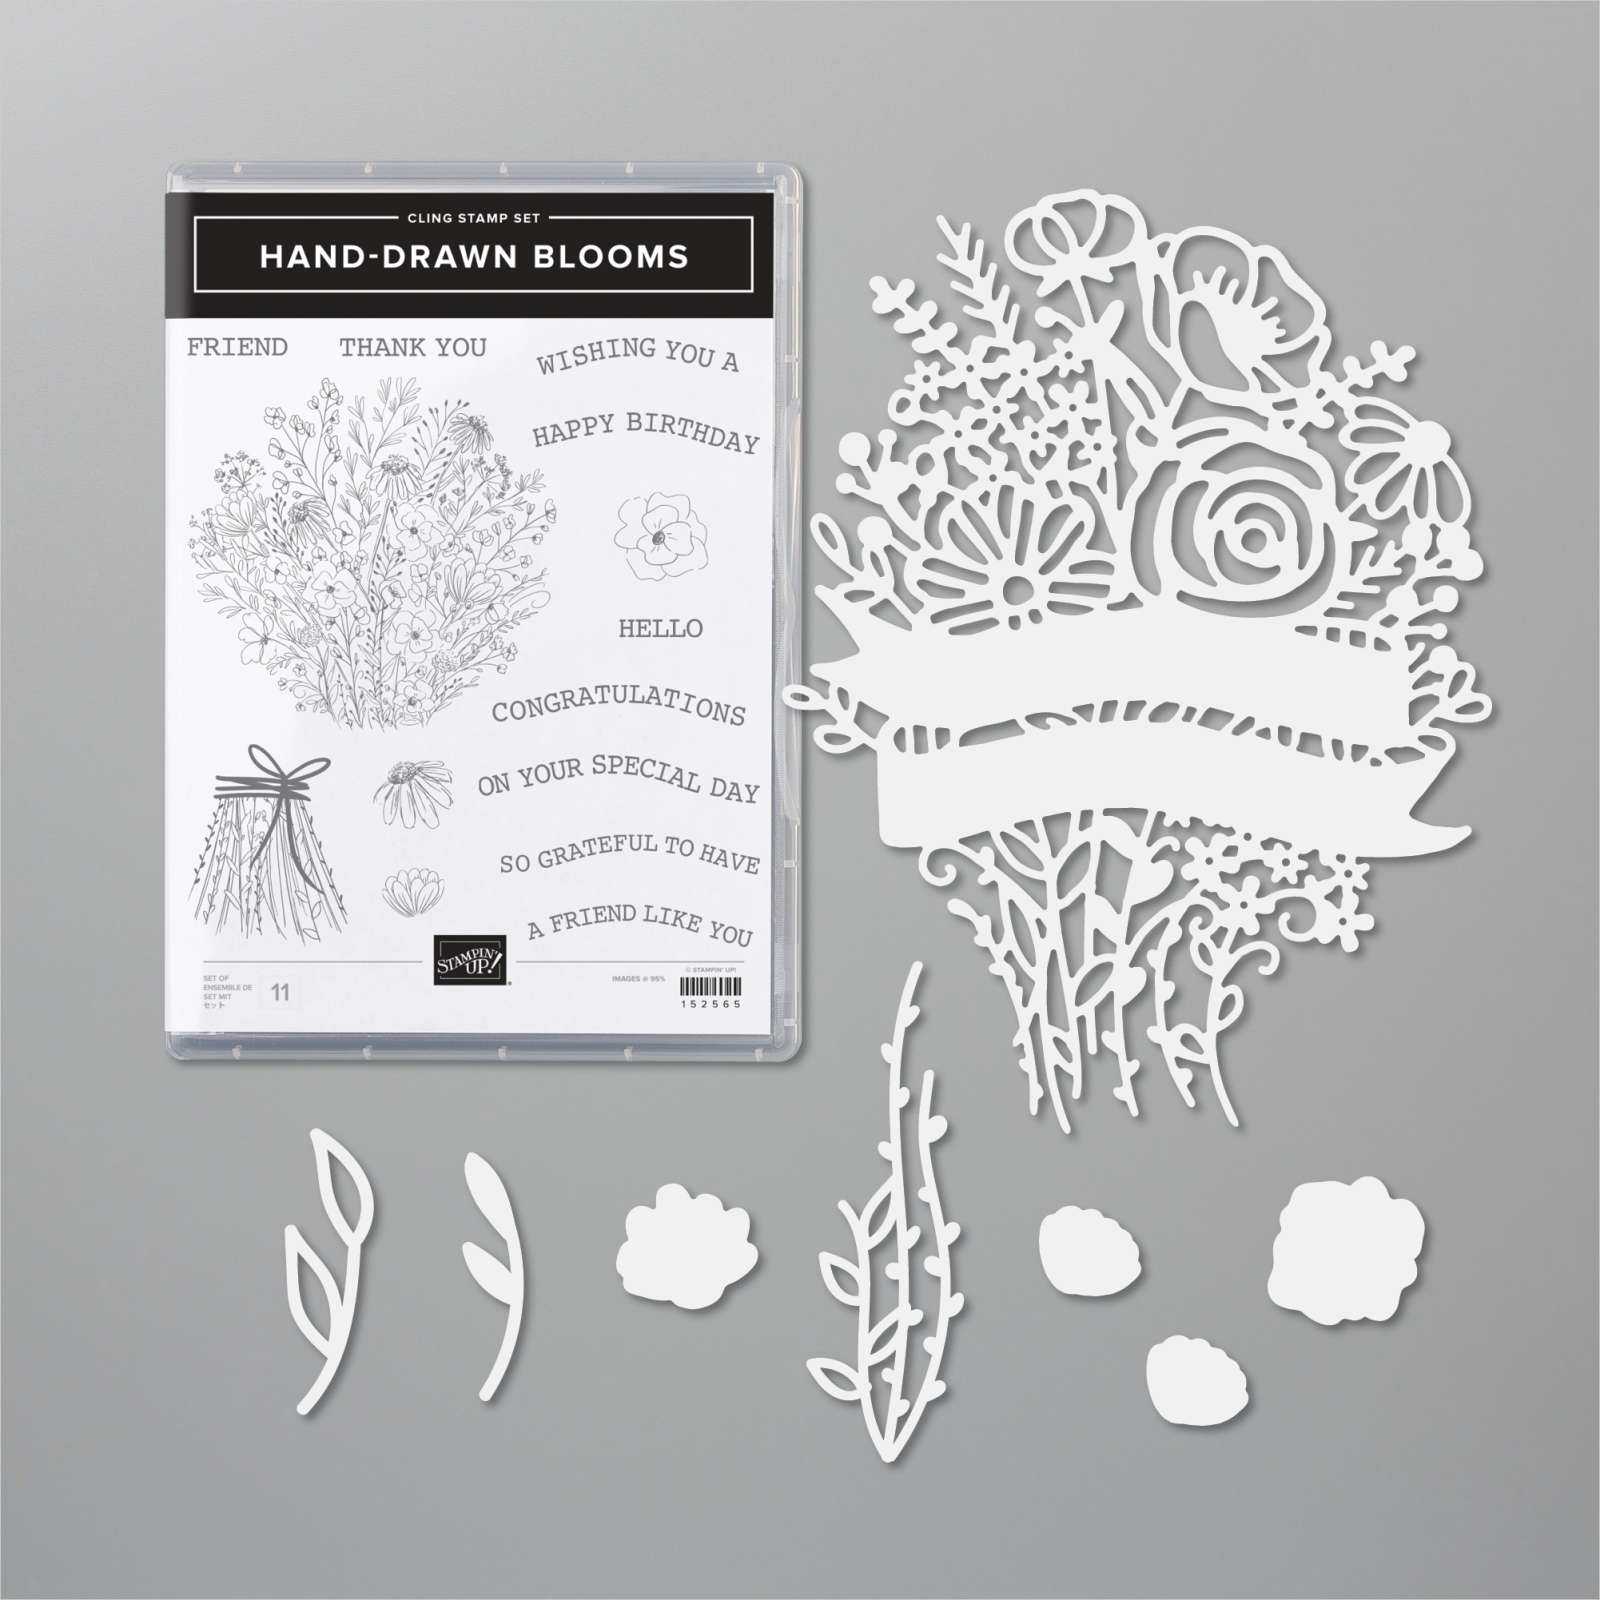 HAND-DRAWN BLOOMS BUNDLE #154101